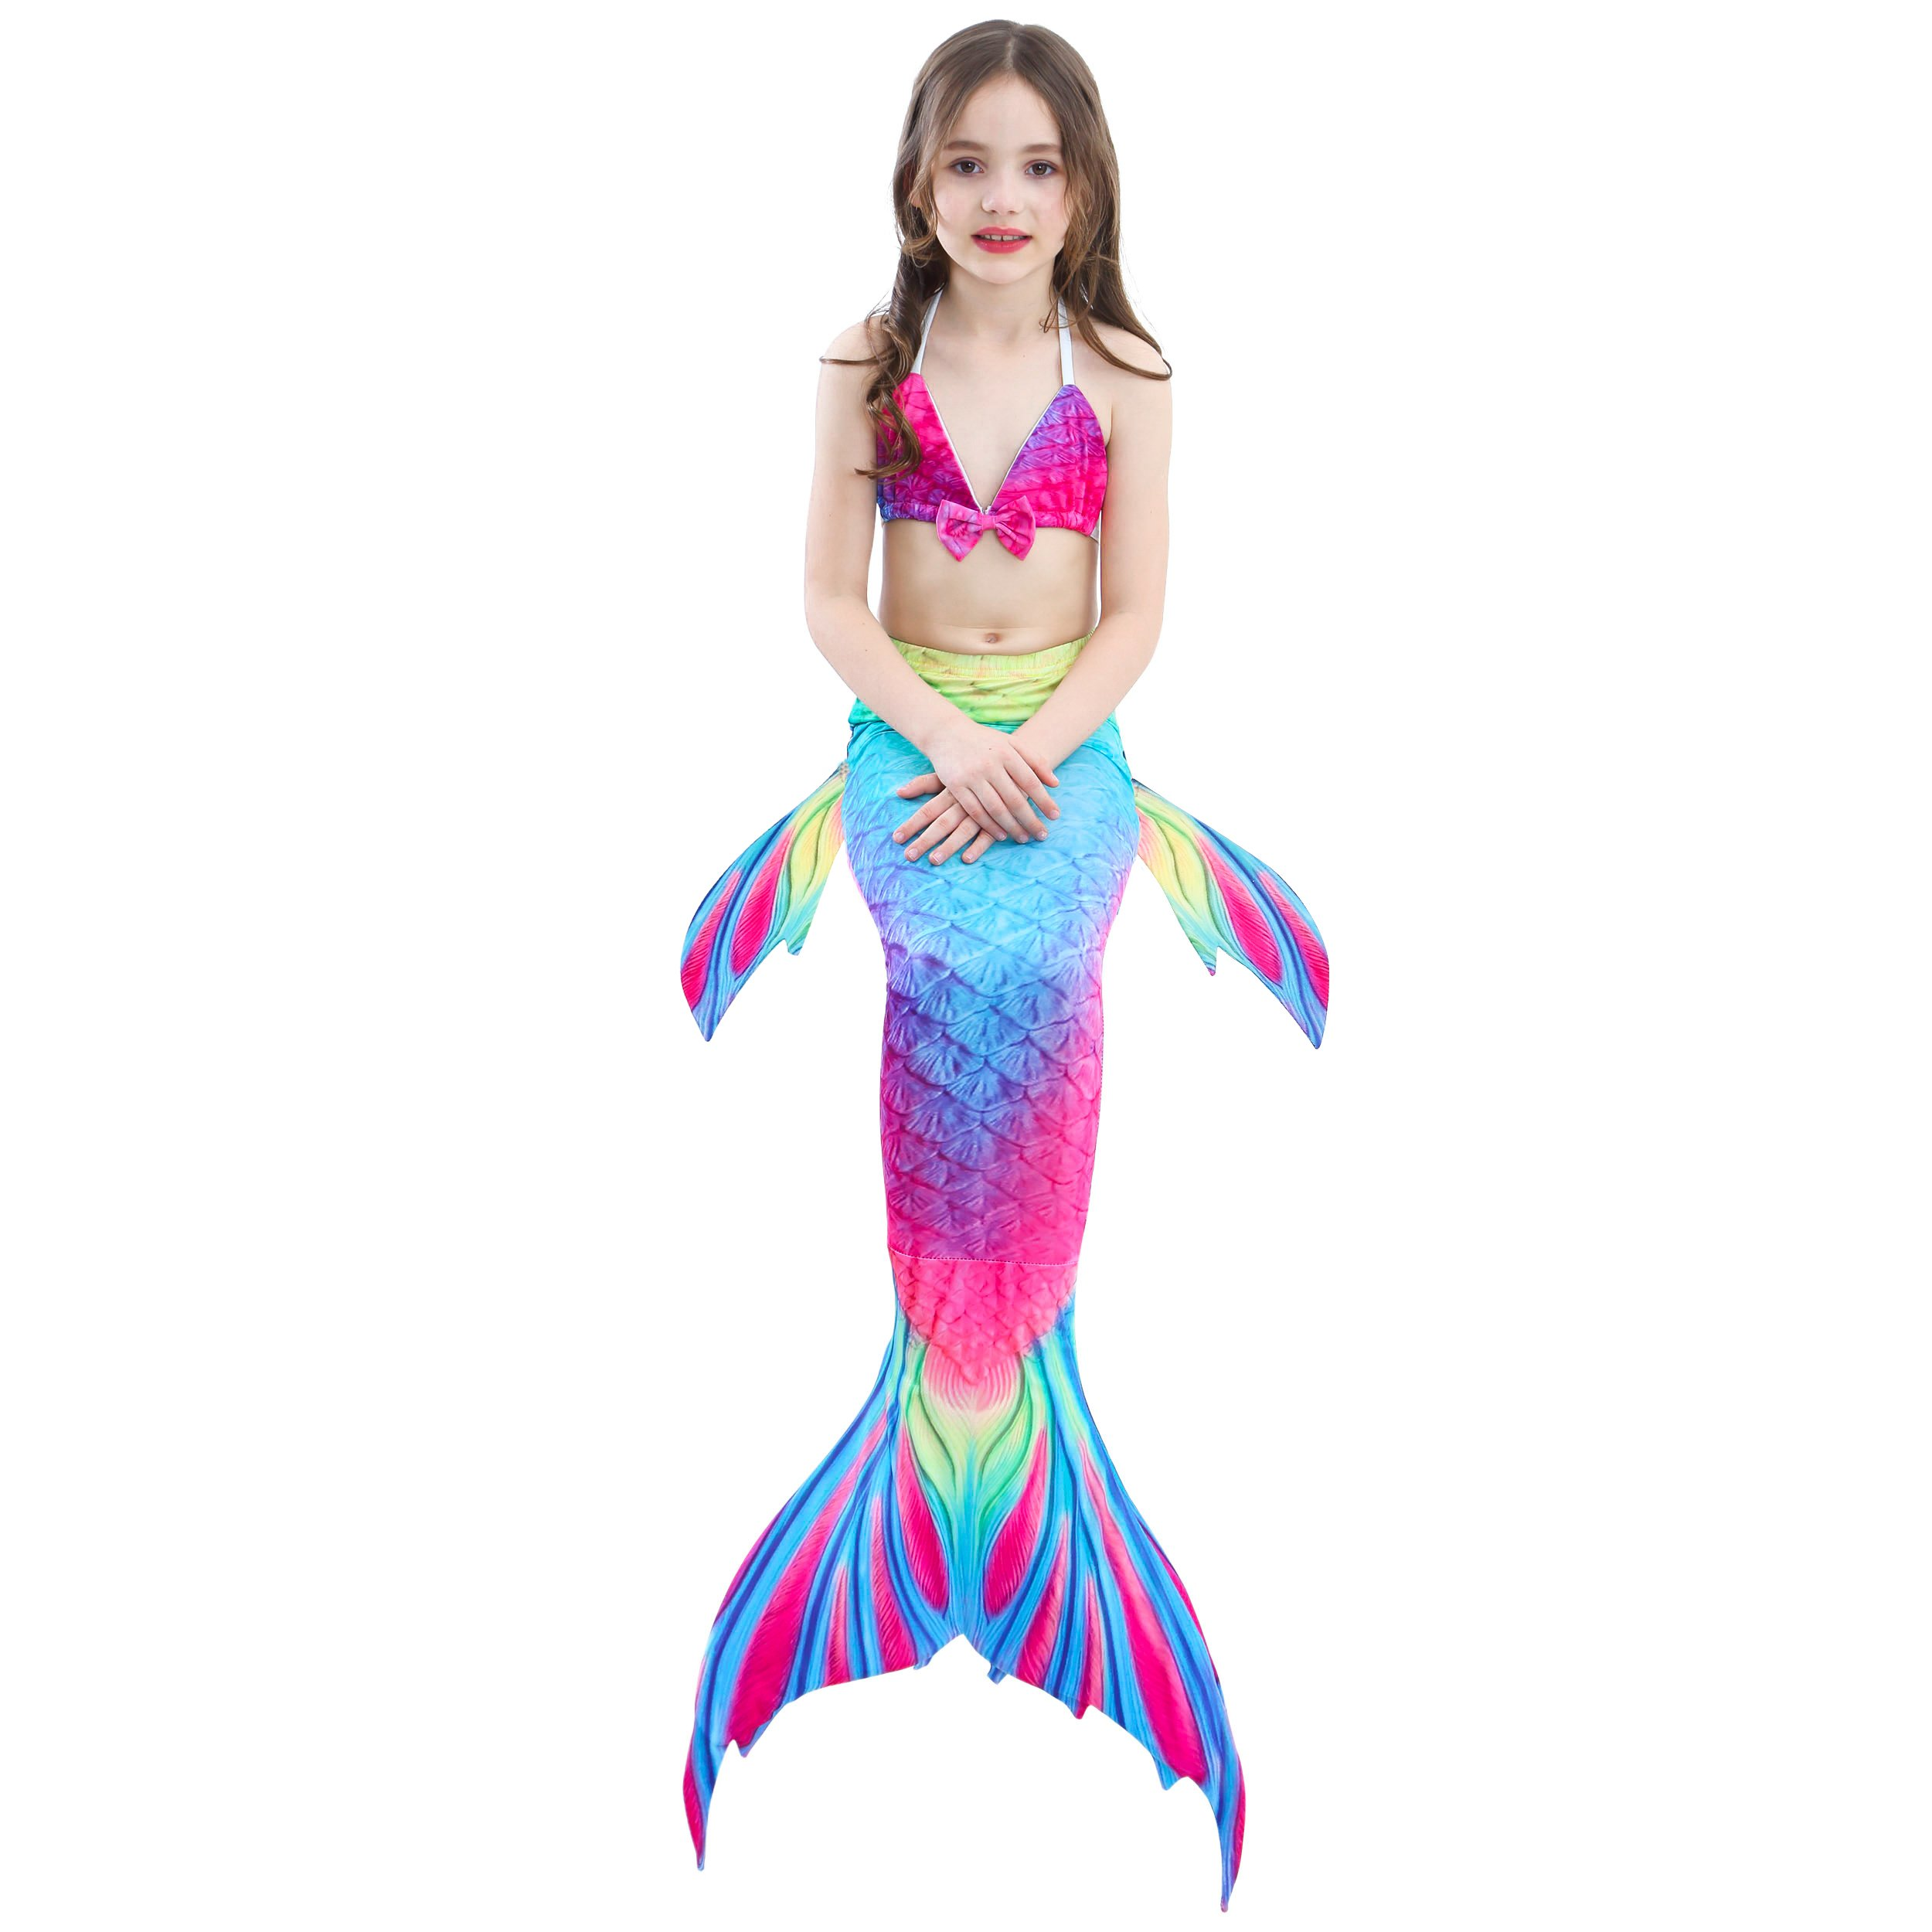 Camlinbo 3PCS Girls' Swimsuit Mermaid Tail for Swimming Tropical Bikini Set Support Monofin by Camlinbo (Image #7)